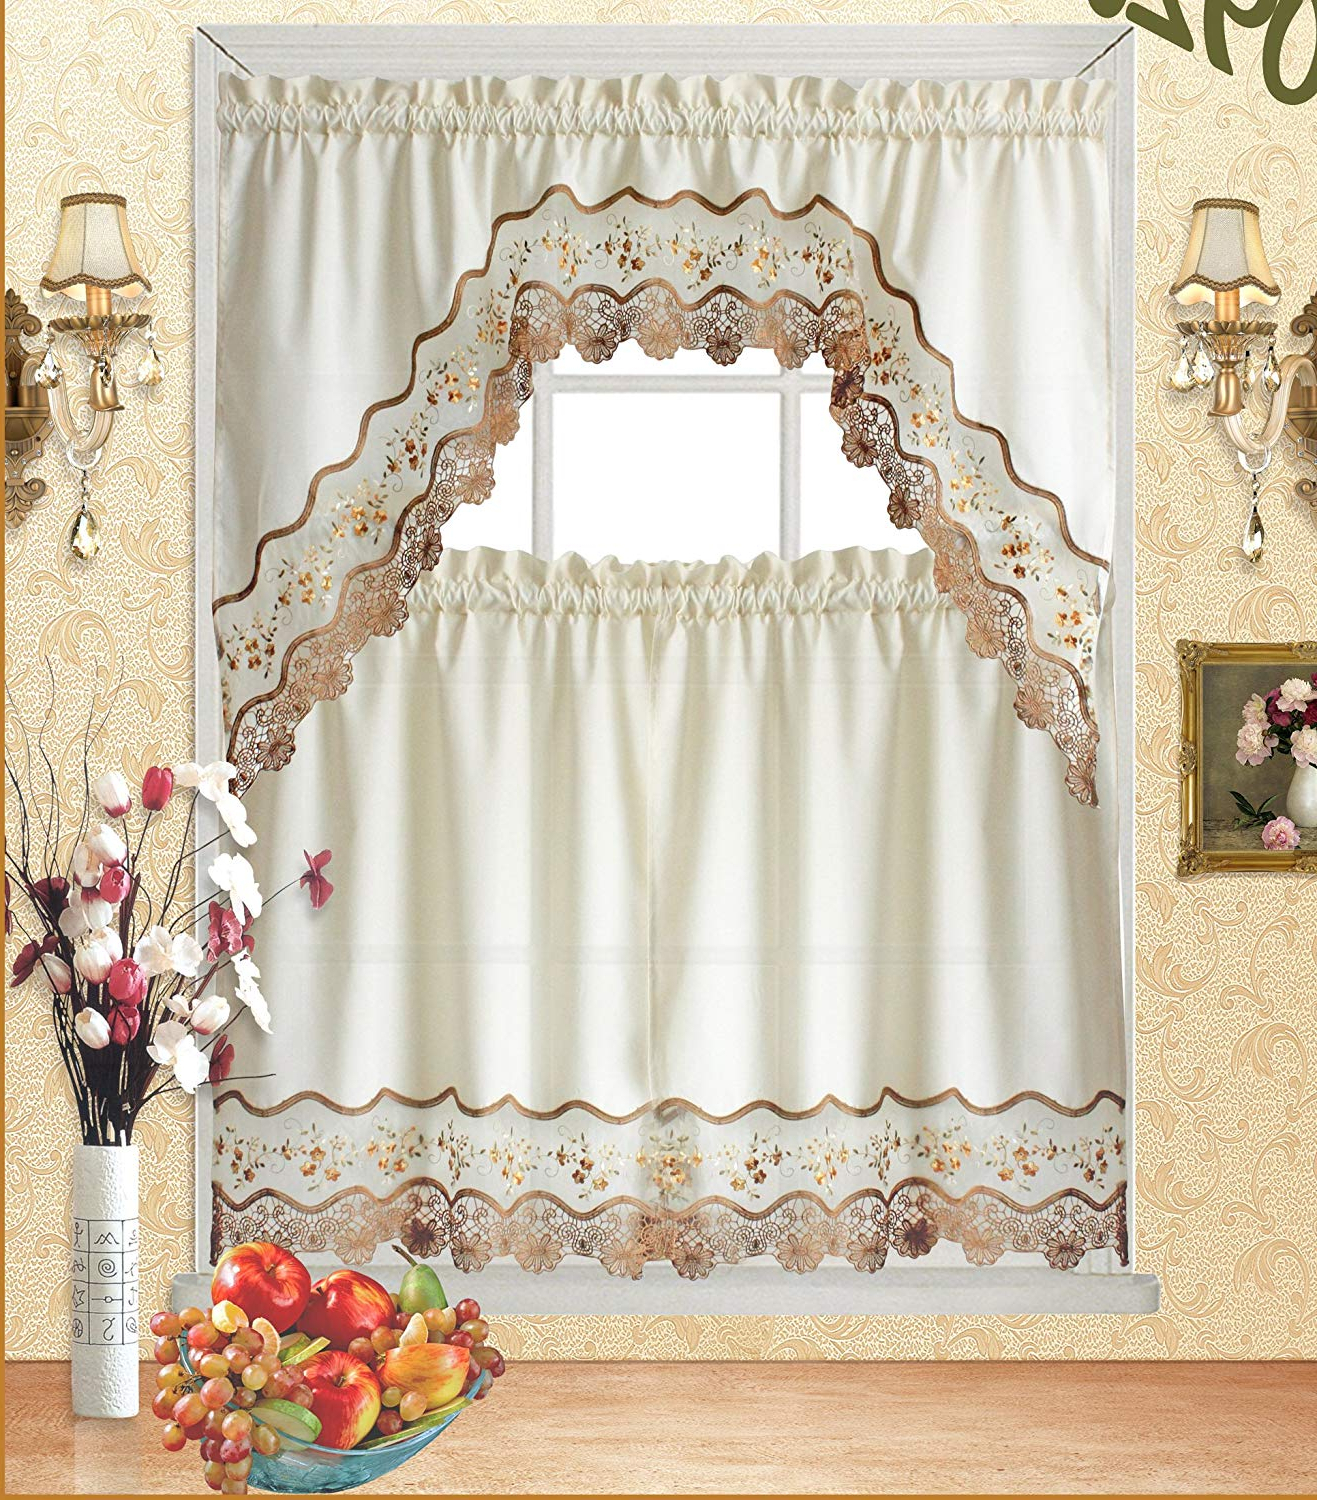 """Best And Newest Fancy Collection 3Pc Beige With Embroidery Floral Kitchen/cafe Curtain Tier  And Valance Set 001092 (60"""" X 38"""", Gold/beige/beige) With Regard To Cottage Ivy Curtain Tiers (View 2 of 20)"""